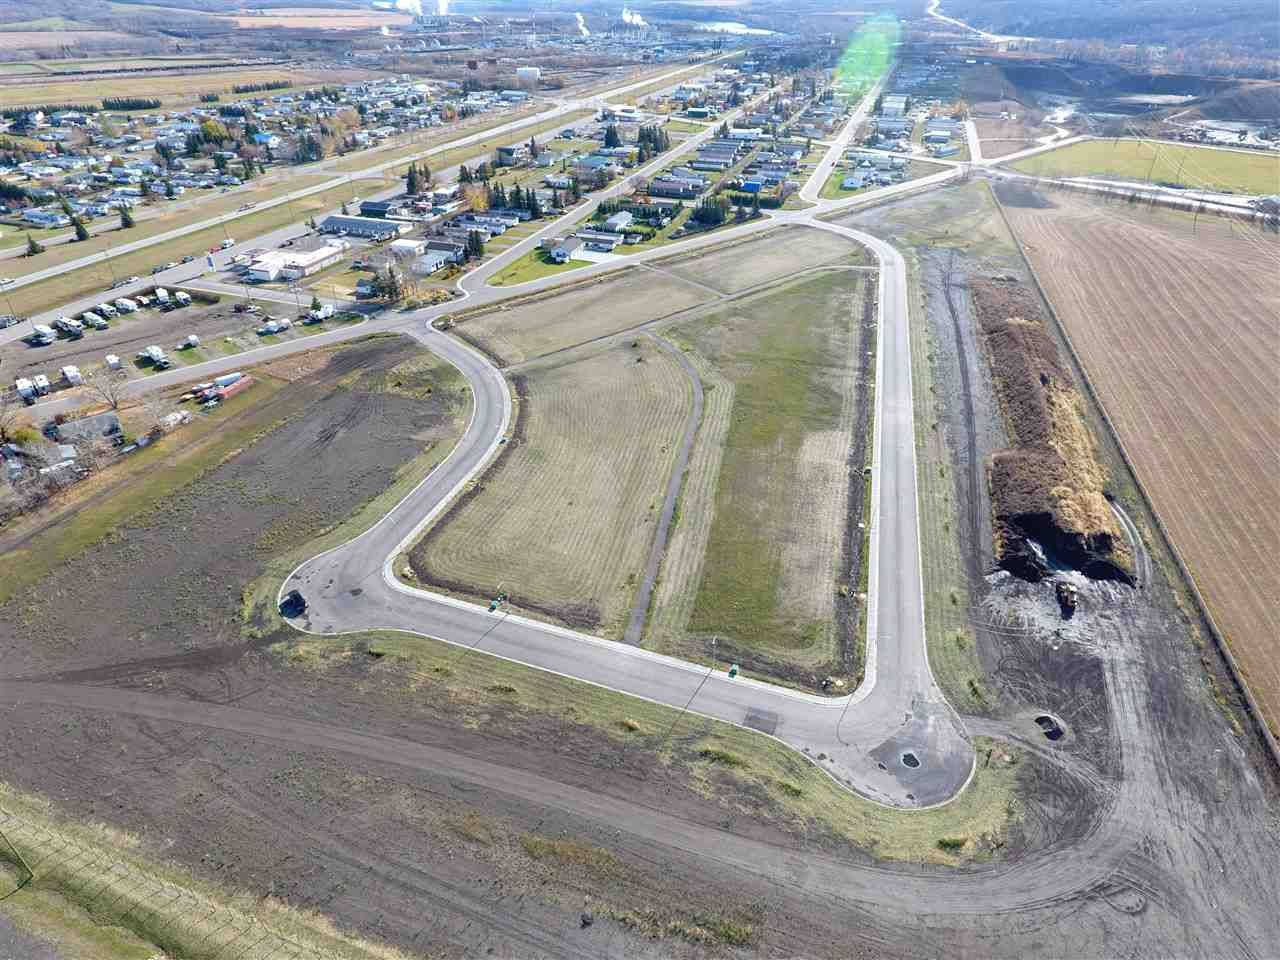 """Main Photo: LOT 2 JARVIS Crescent: Taylor Land for sale in """"JARVIS CRESCENT"""" (Fort St. John (Zone 60))  : MLS®# R2509875"""